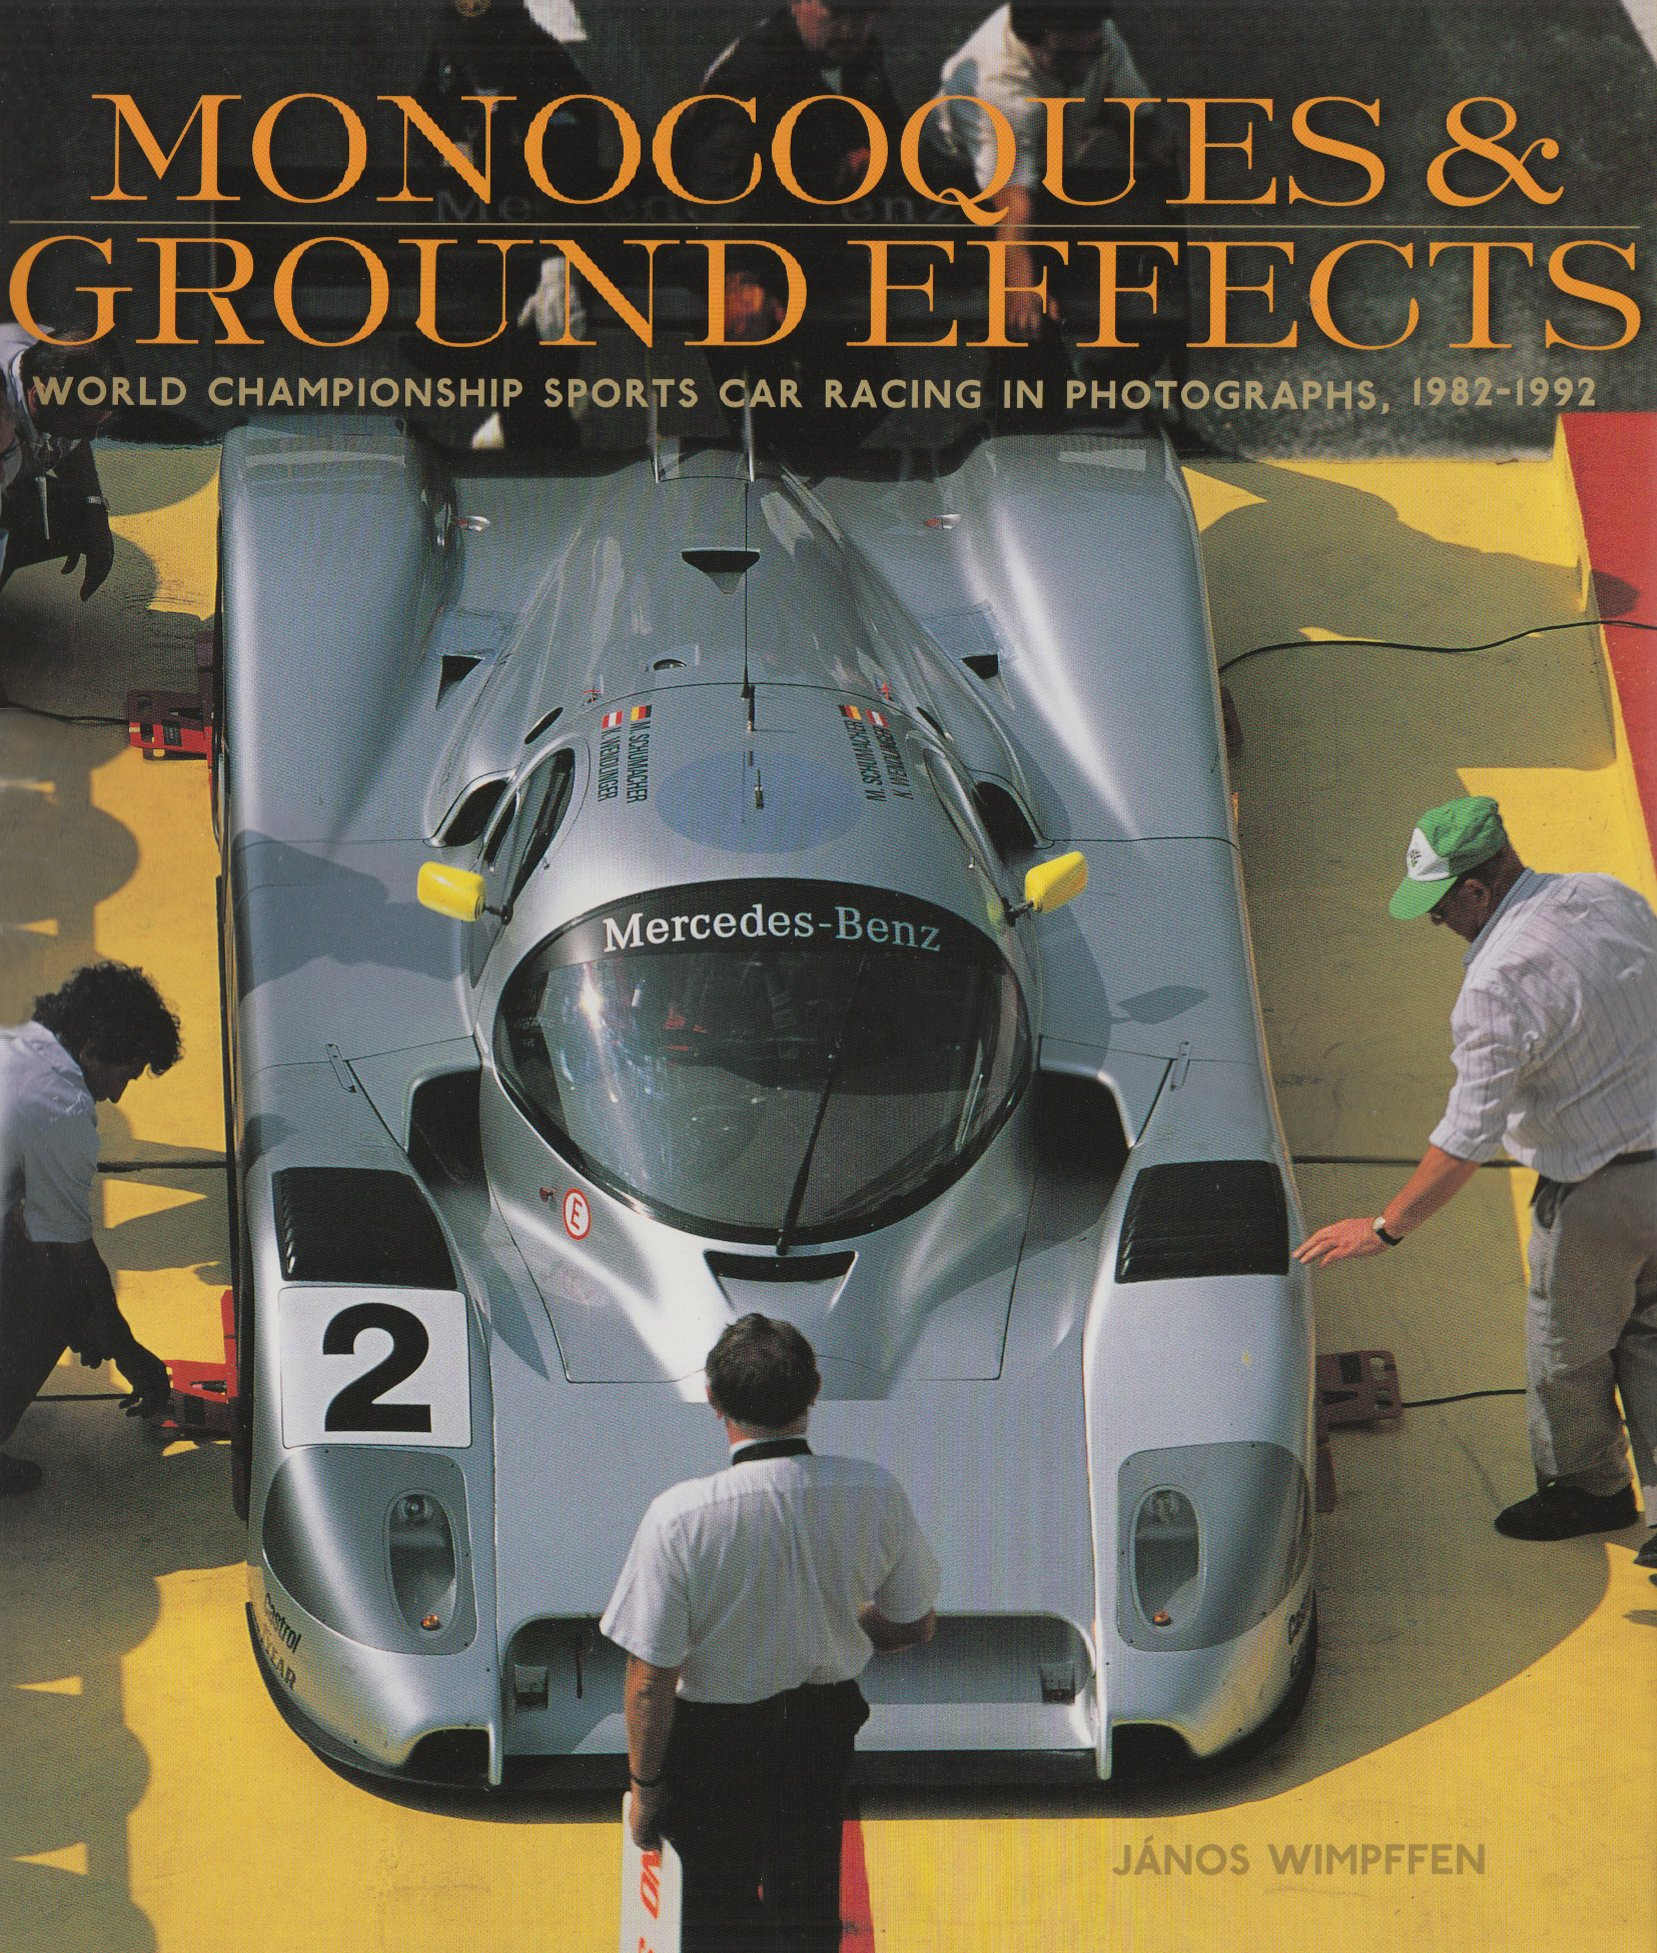 Read Online Monocoques & Ground Effects: World Championship Sports Car Racing in Photographs, 1982-1992 PDF